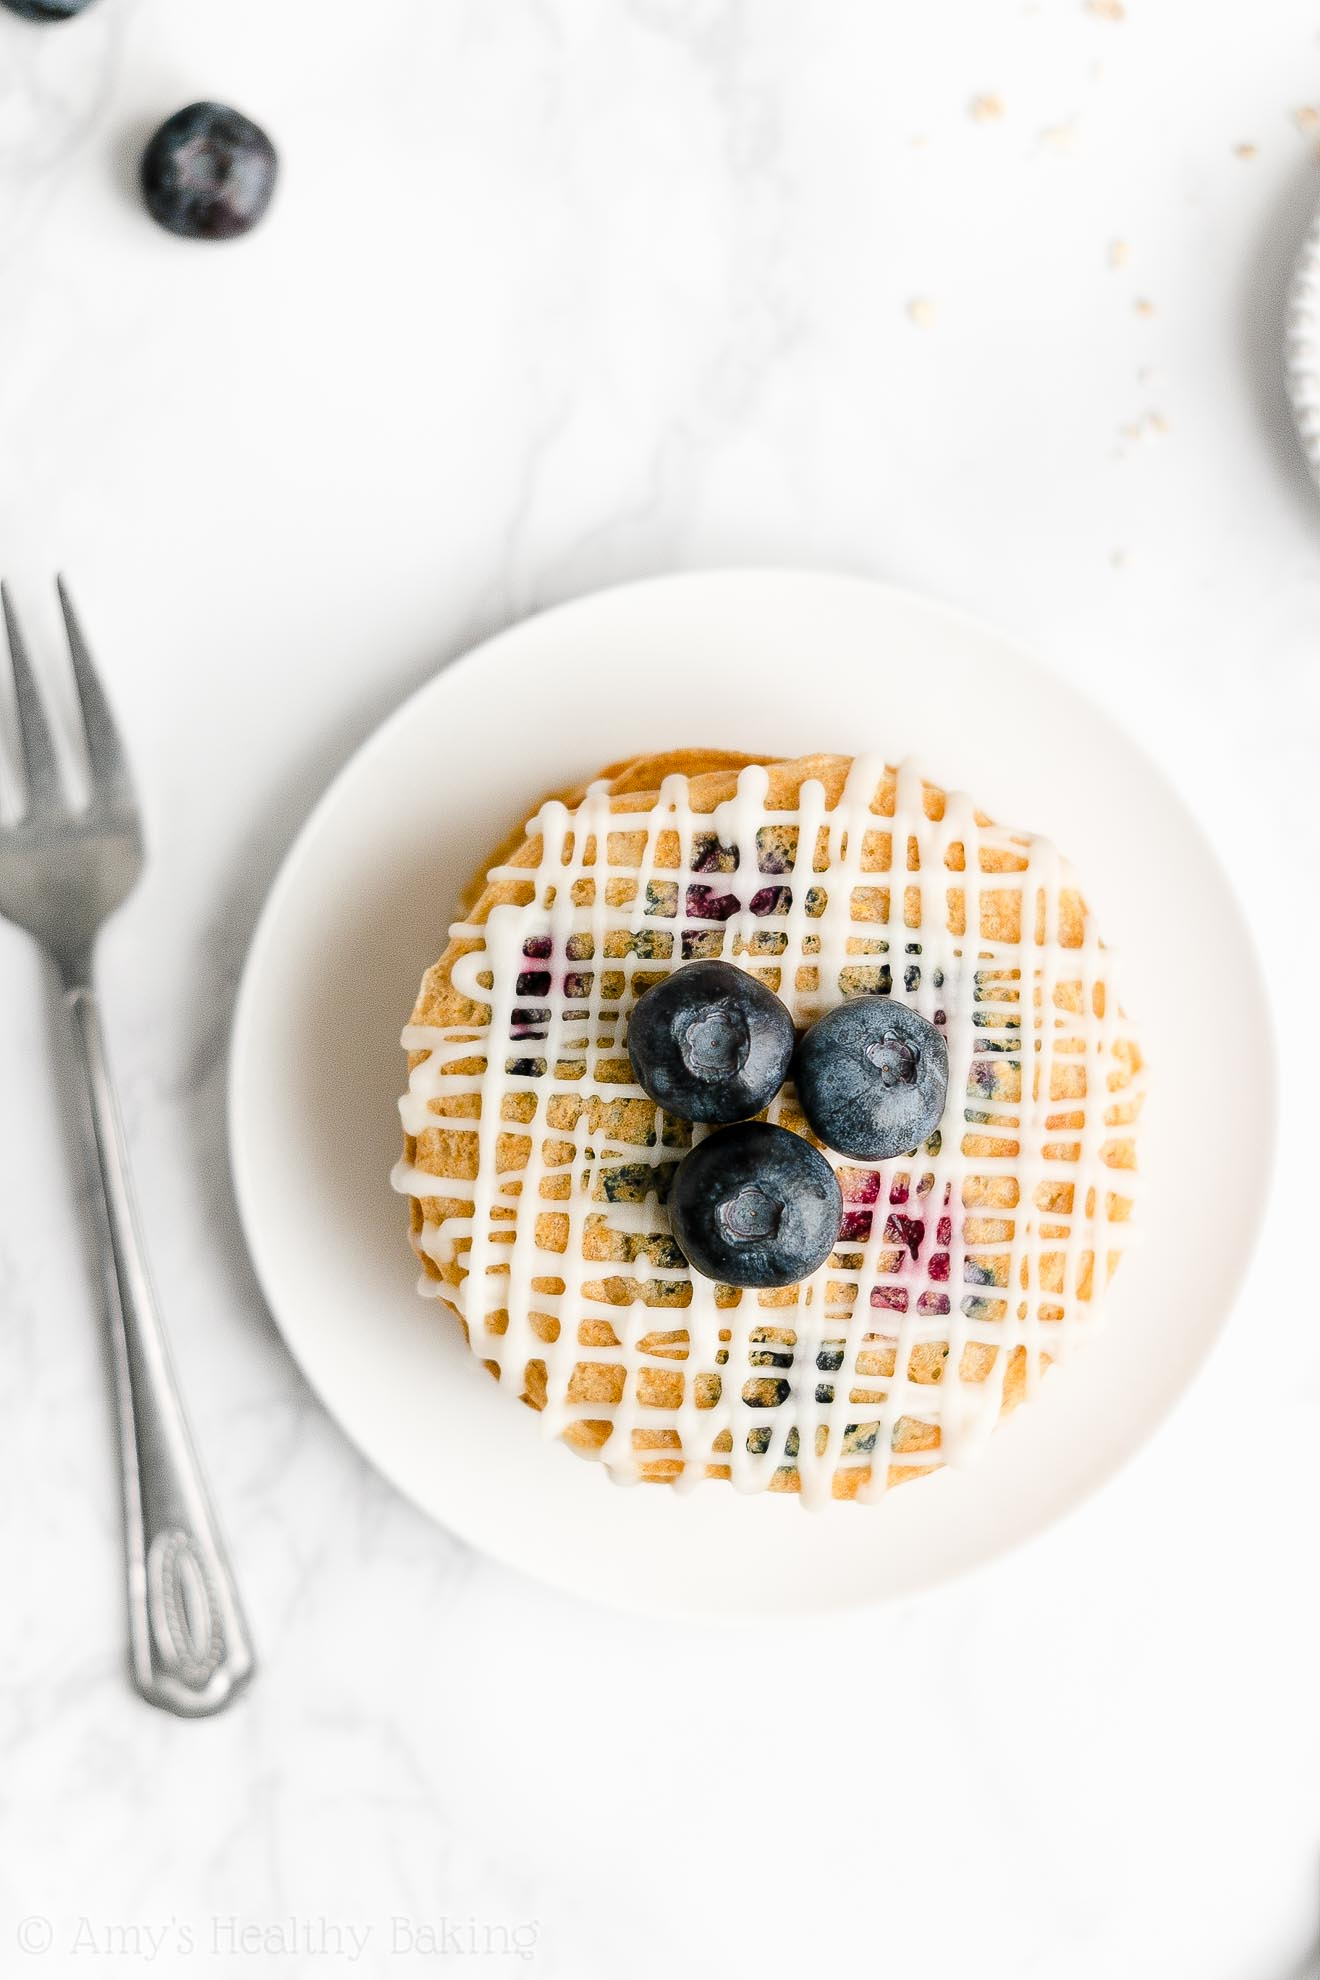 Easy Healthy Low Sugar Low Calorie Fluffy Blueberry Oatmeal Pancakes